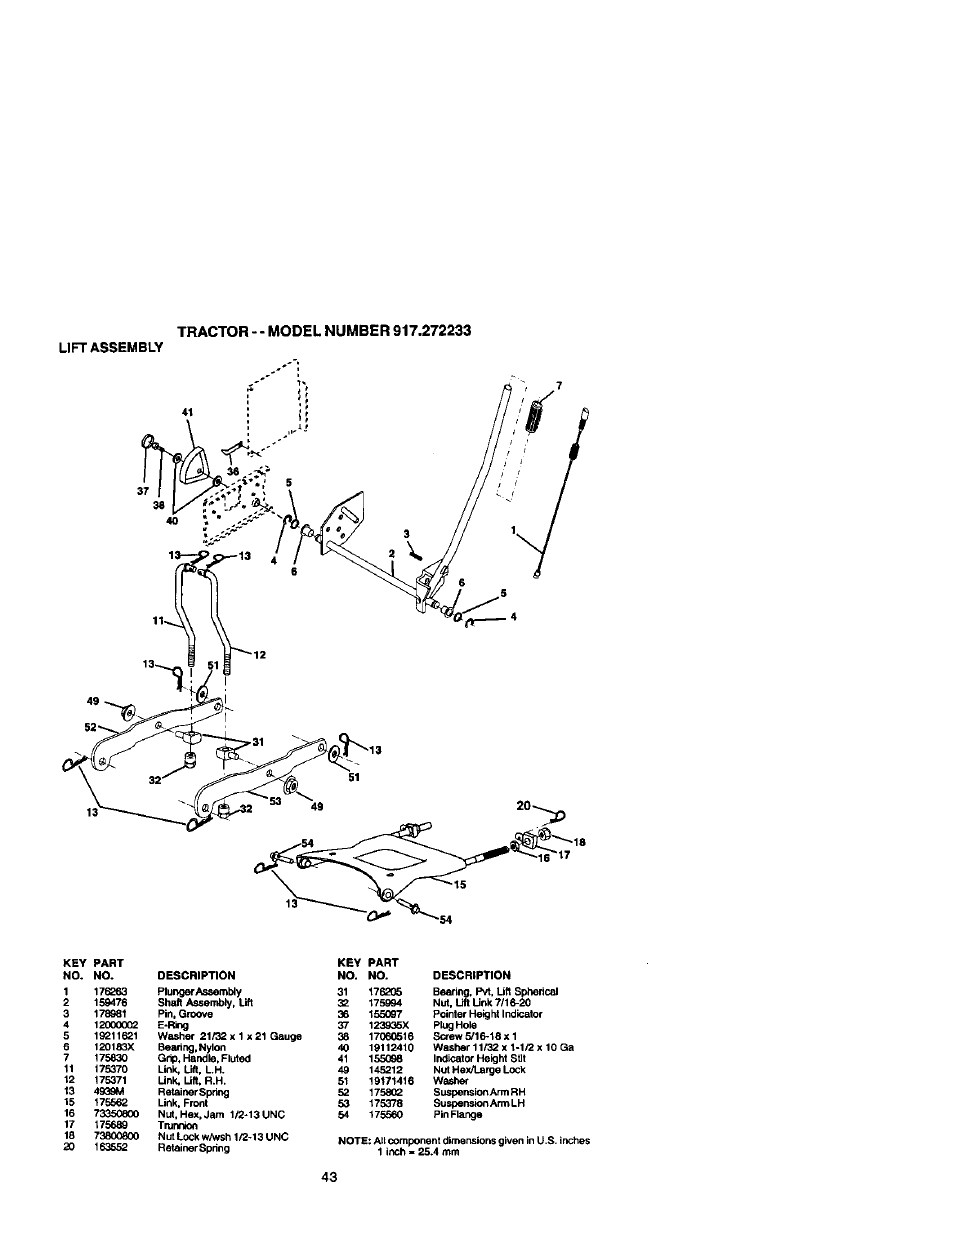 lift assembly craftsman 917 272233 user manual page 43 60 Spring Words